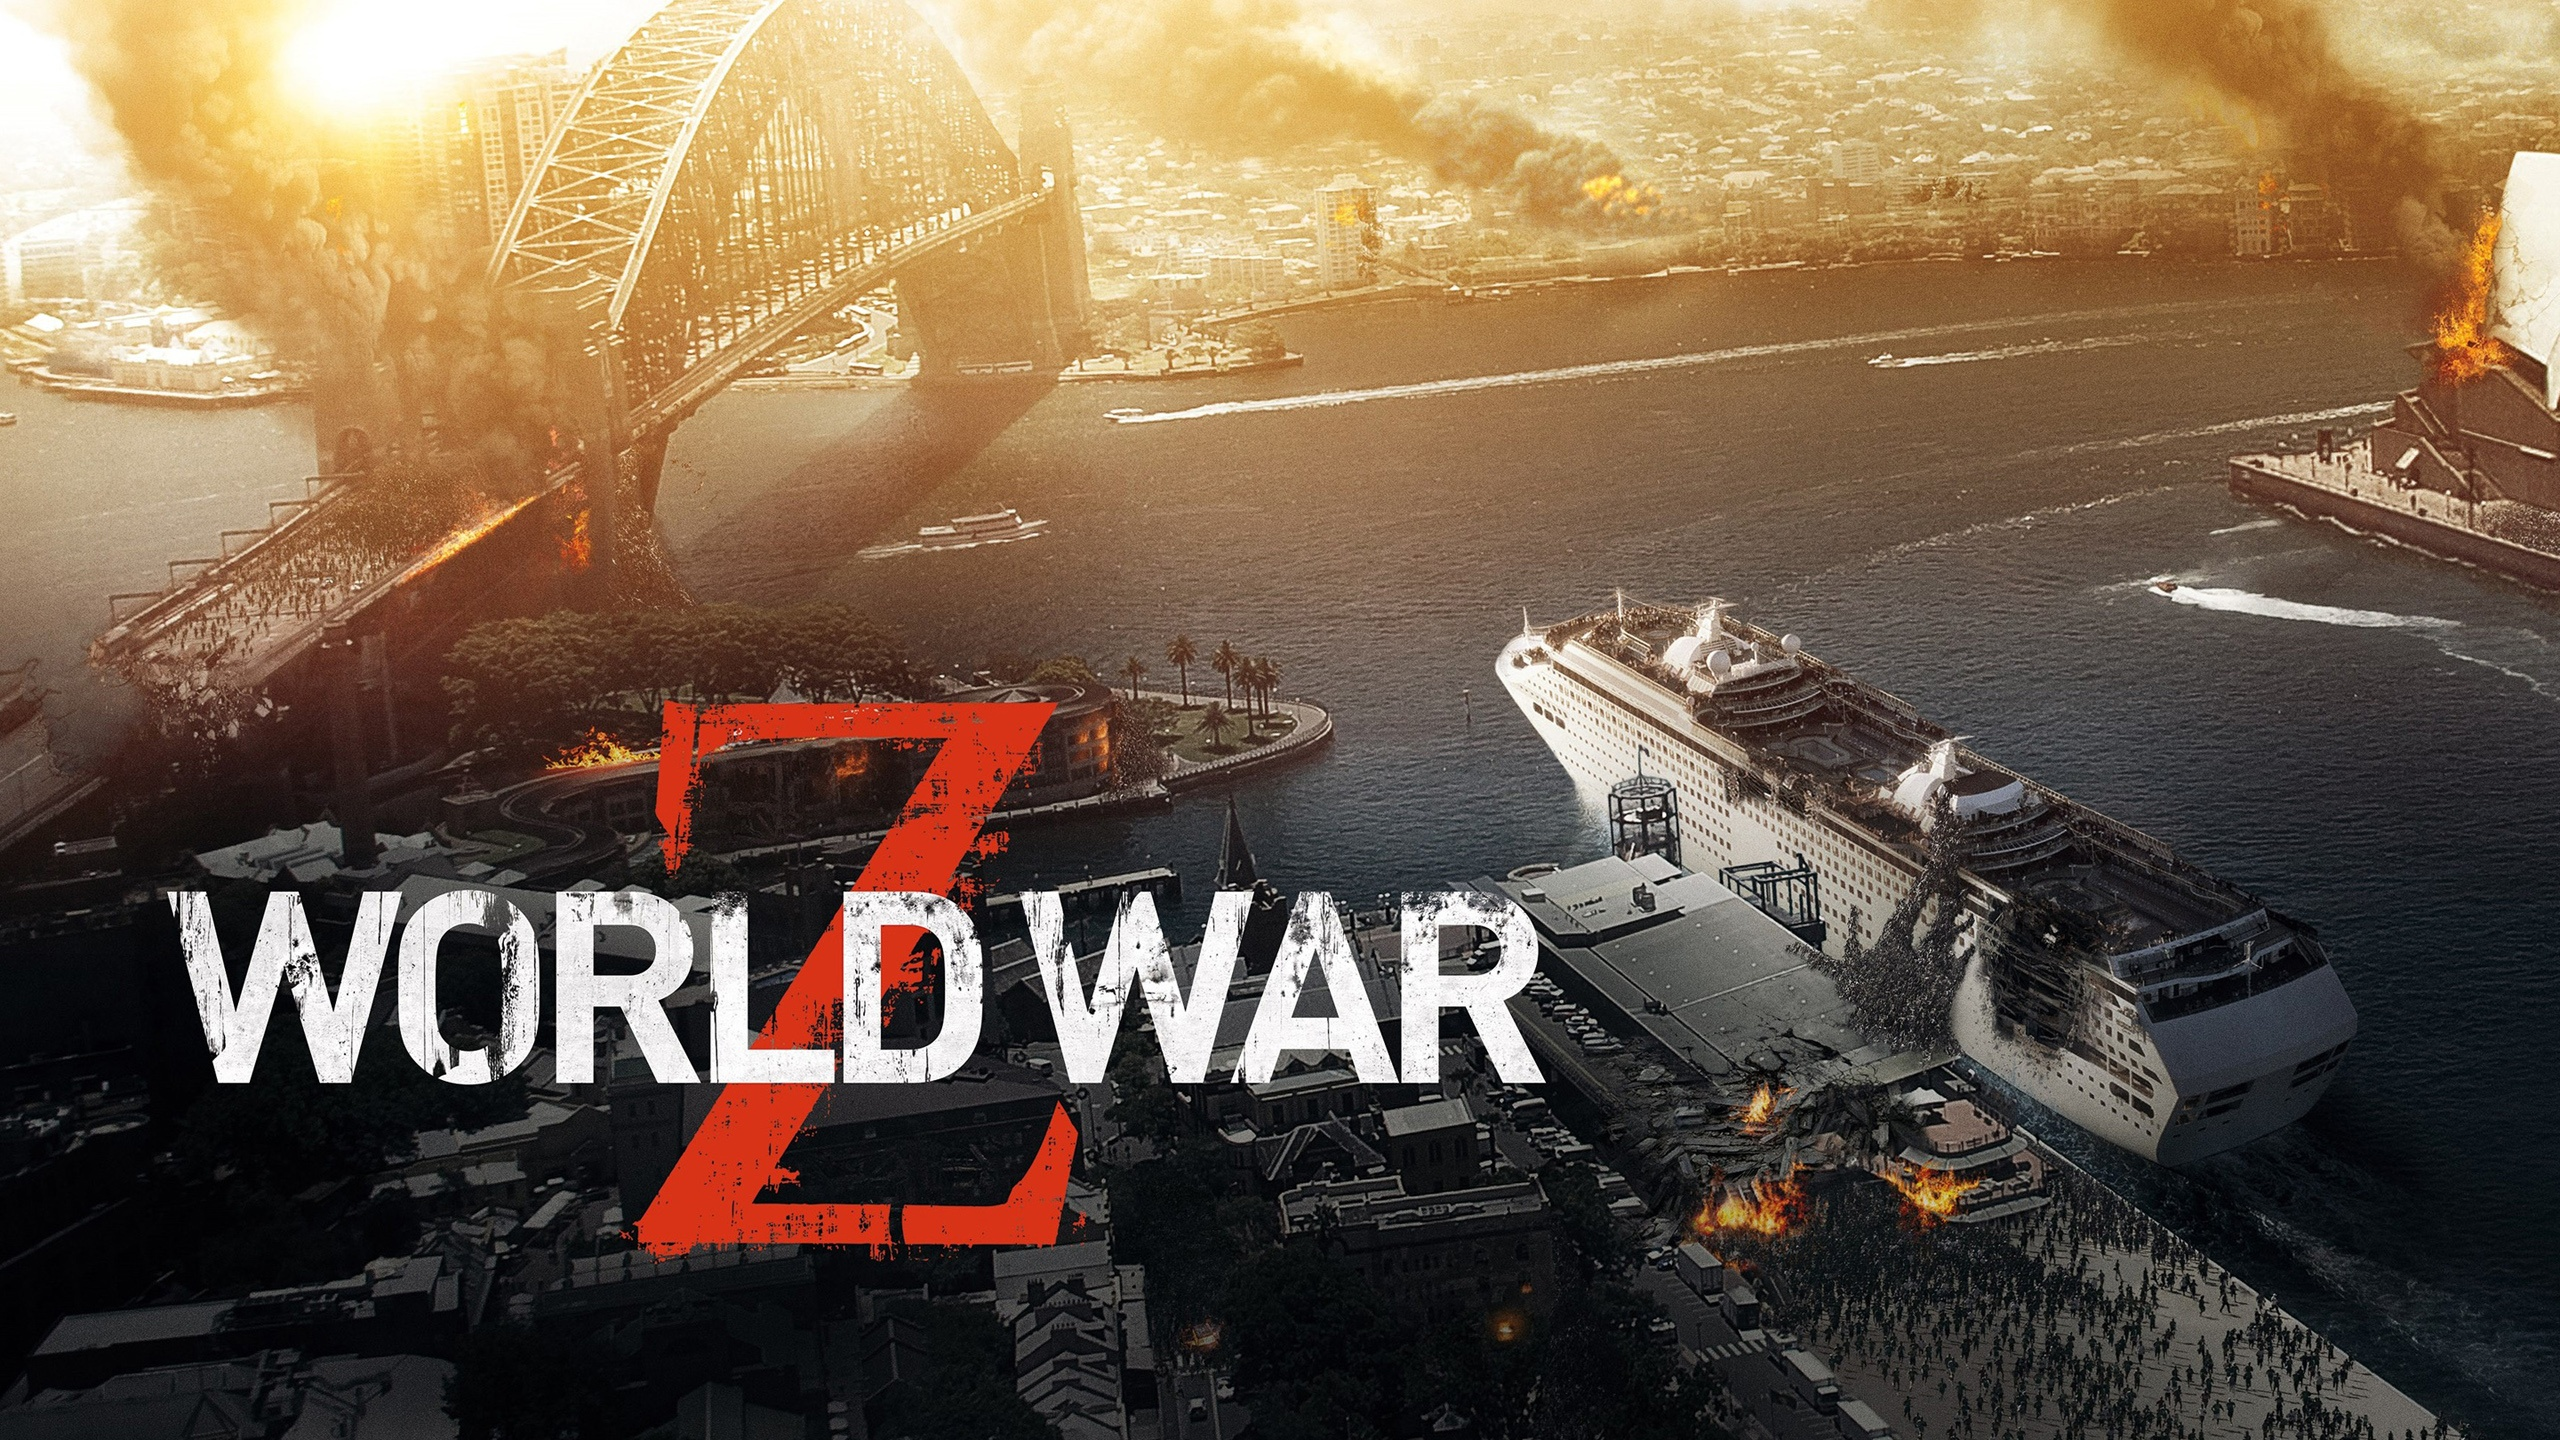 Wallpaper World War Z Zombie Siege 2560x1600 Hd Picture Image